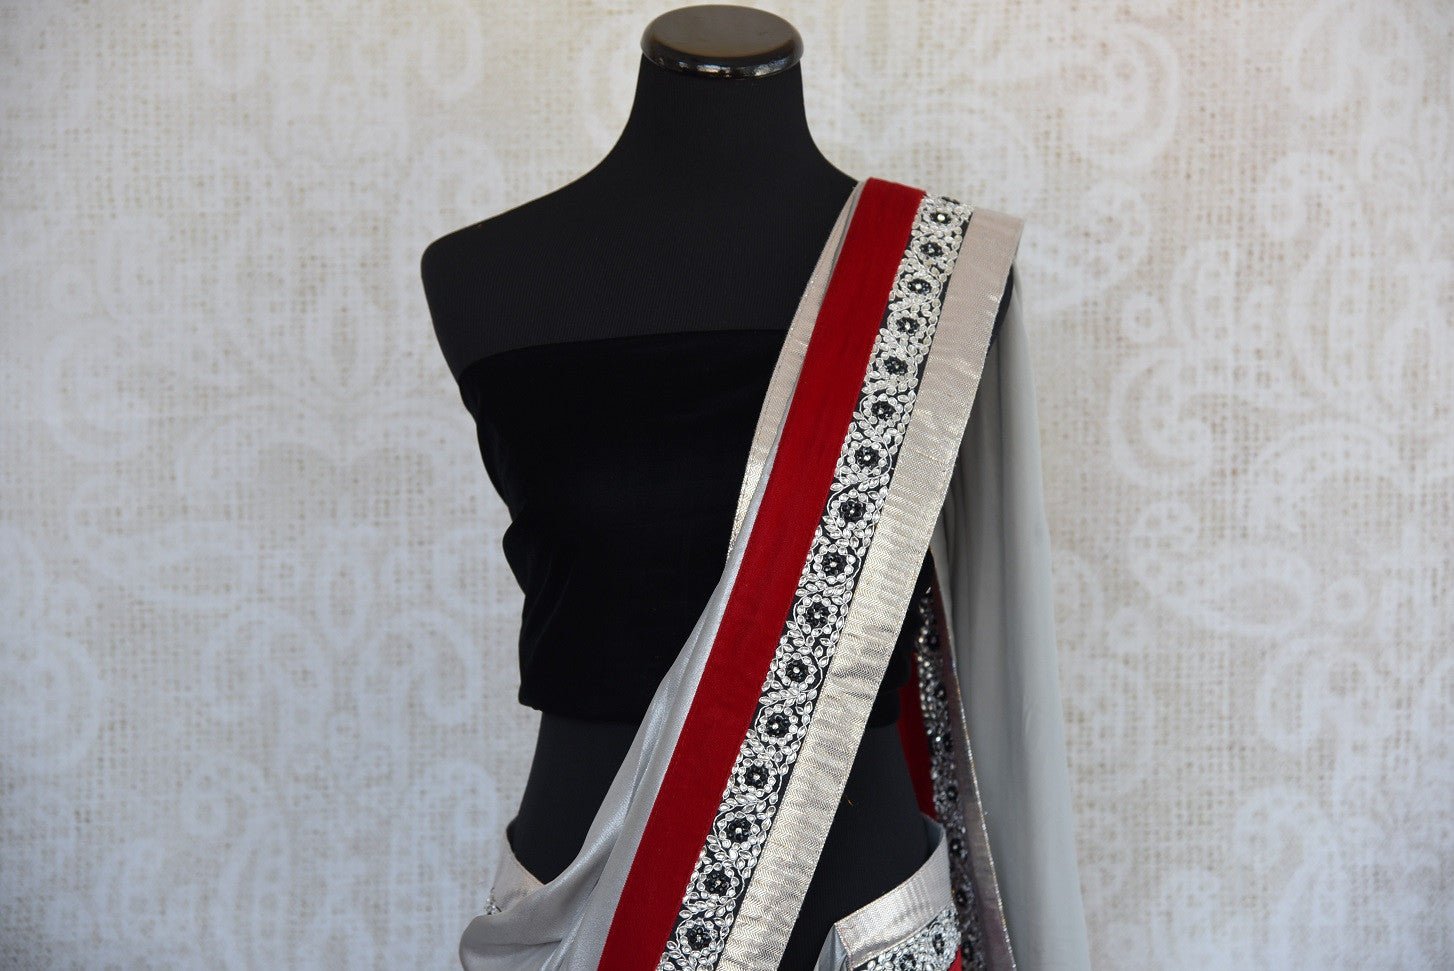 90A885 Black velvet saree with red and white border trims. This beautiful party wear saree with a floral pattern is a must-have in your Indian clothing collection and is available at Pure Elegance - our India wear store in USA.